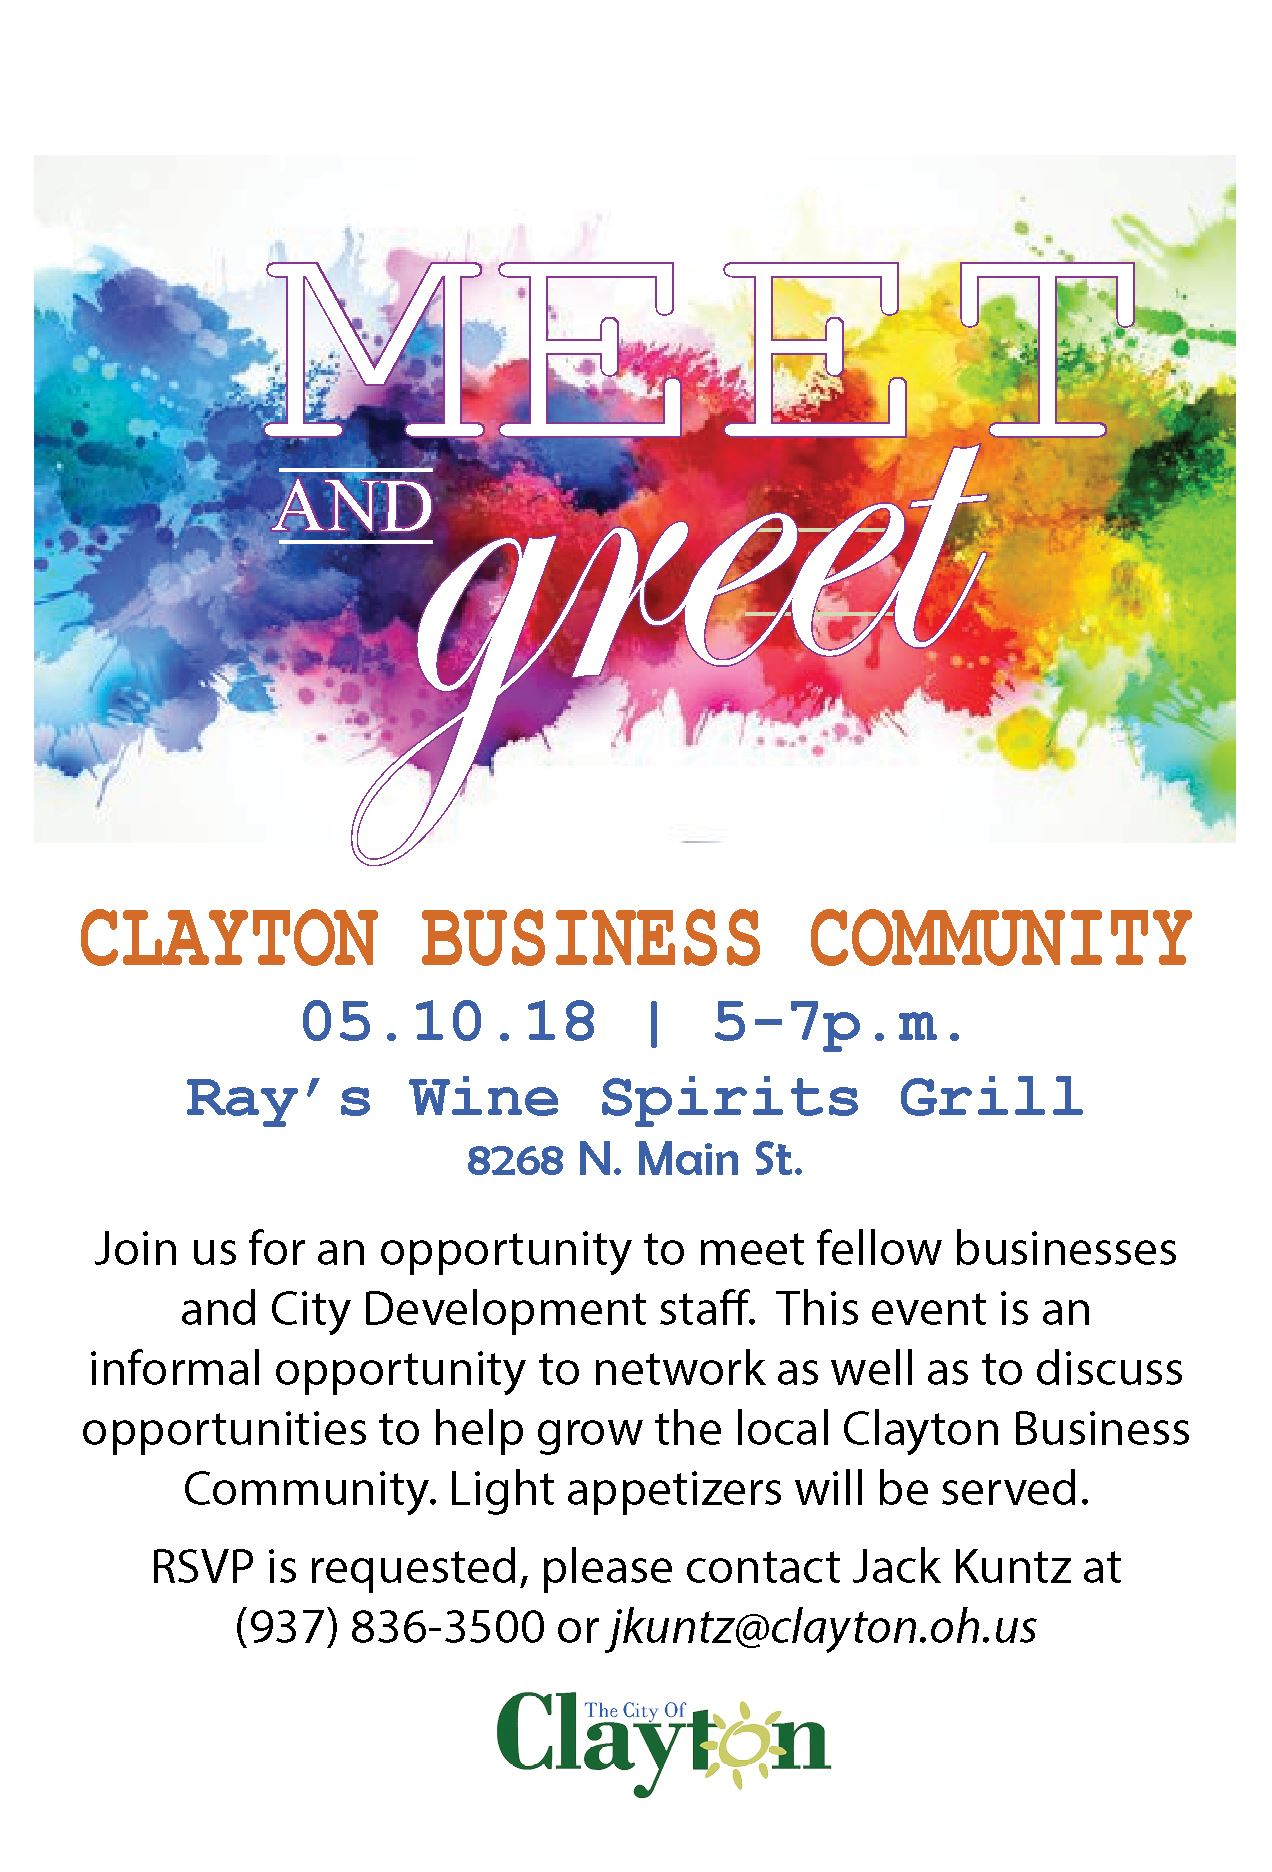 Clayton, OH - Official Website